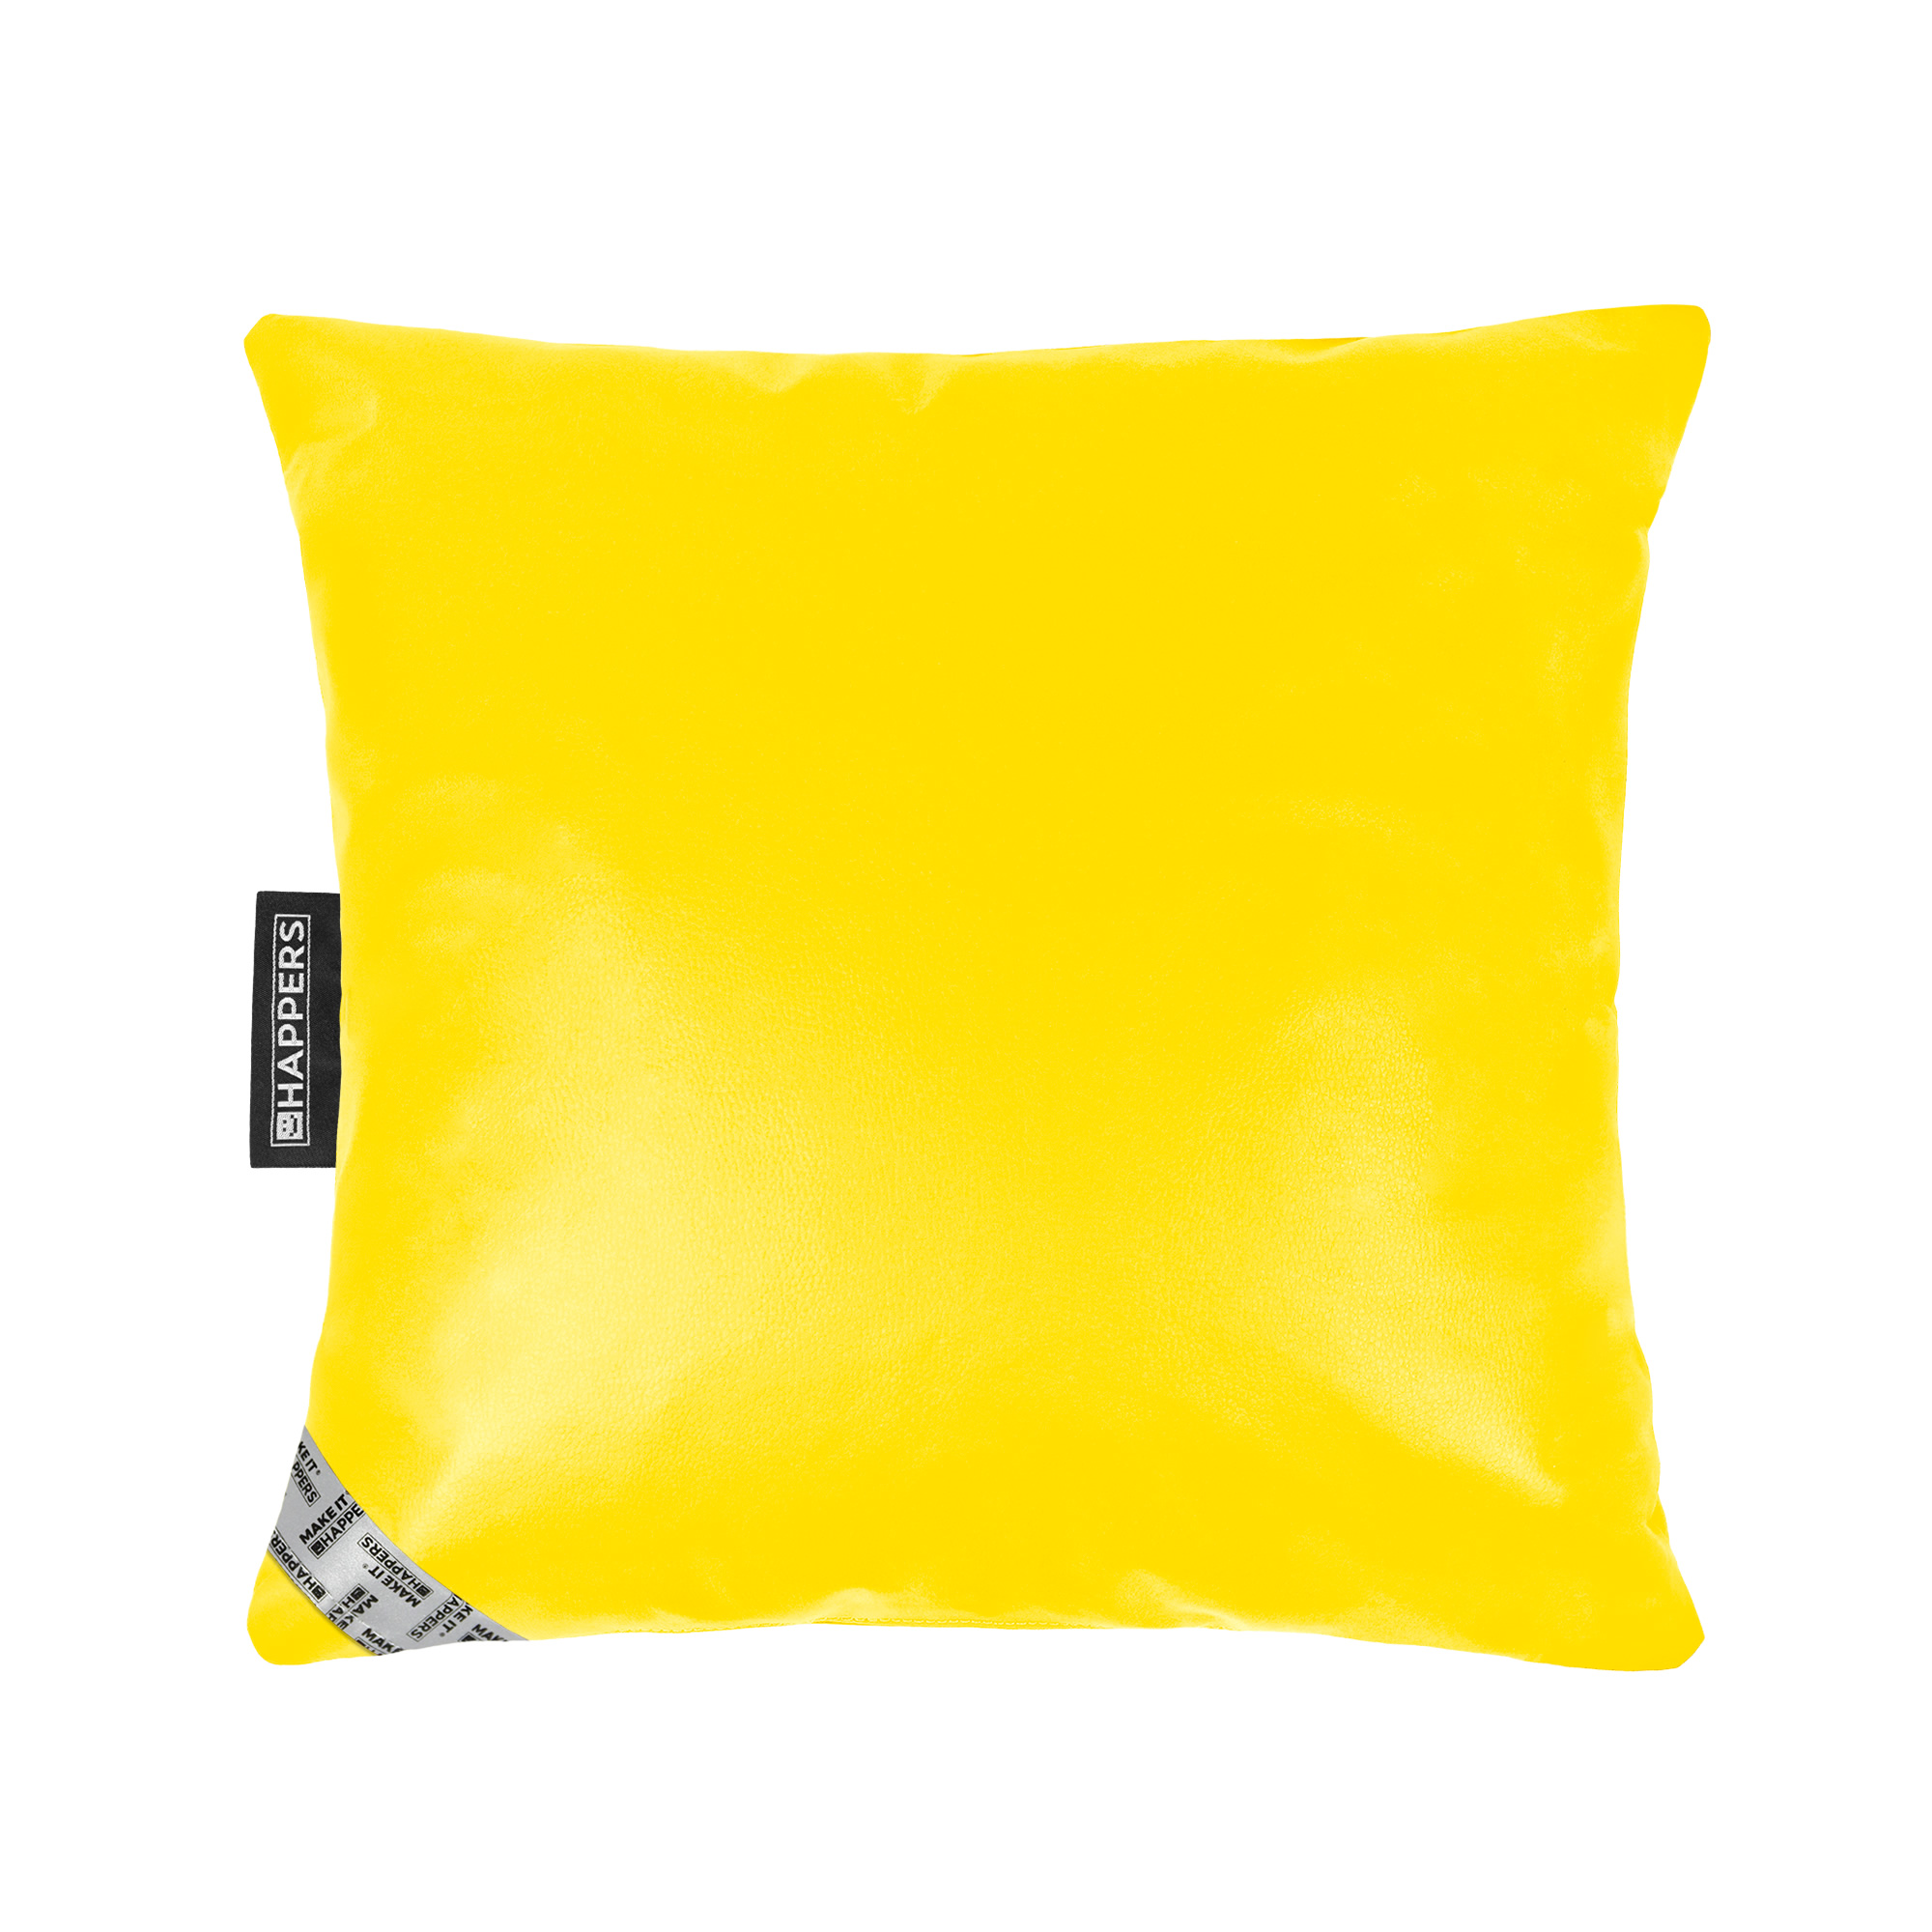 Cojín 45x45 Polipiel Indoor Amarillo Happers | Happers.es